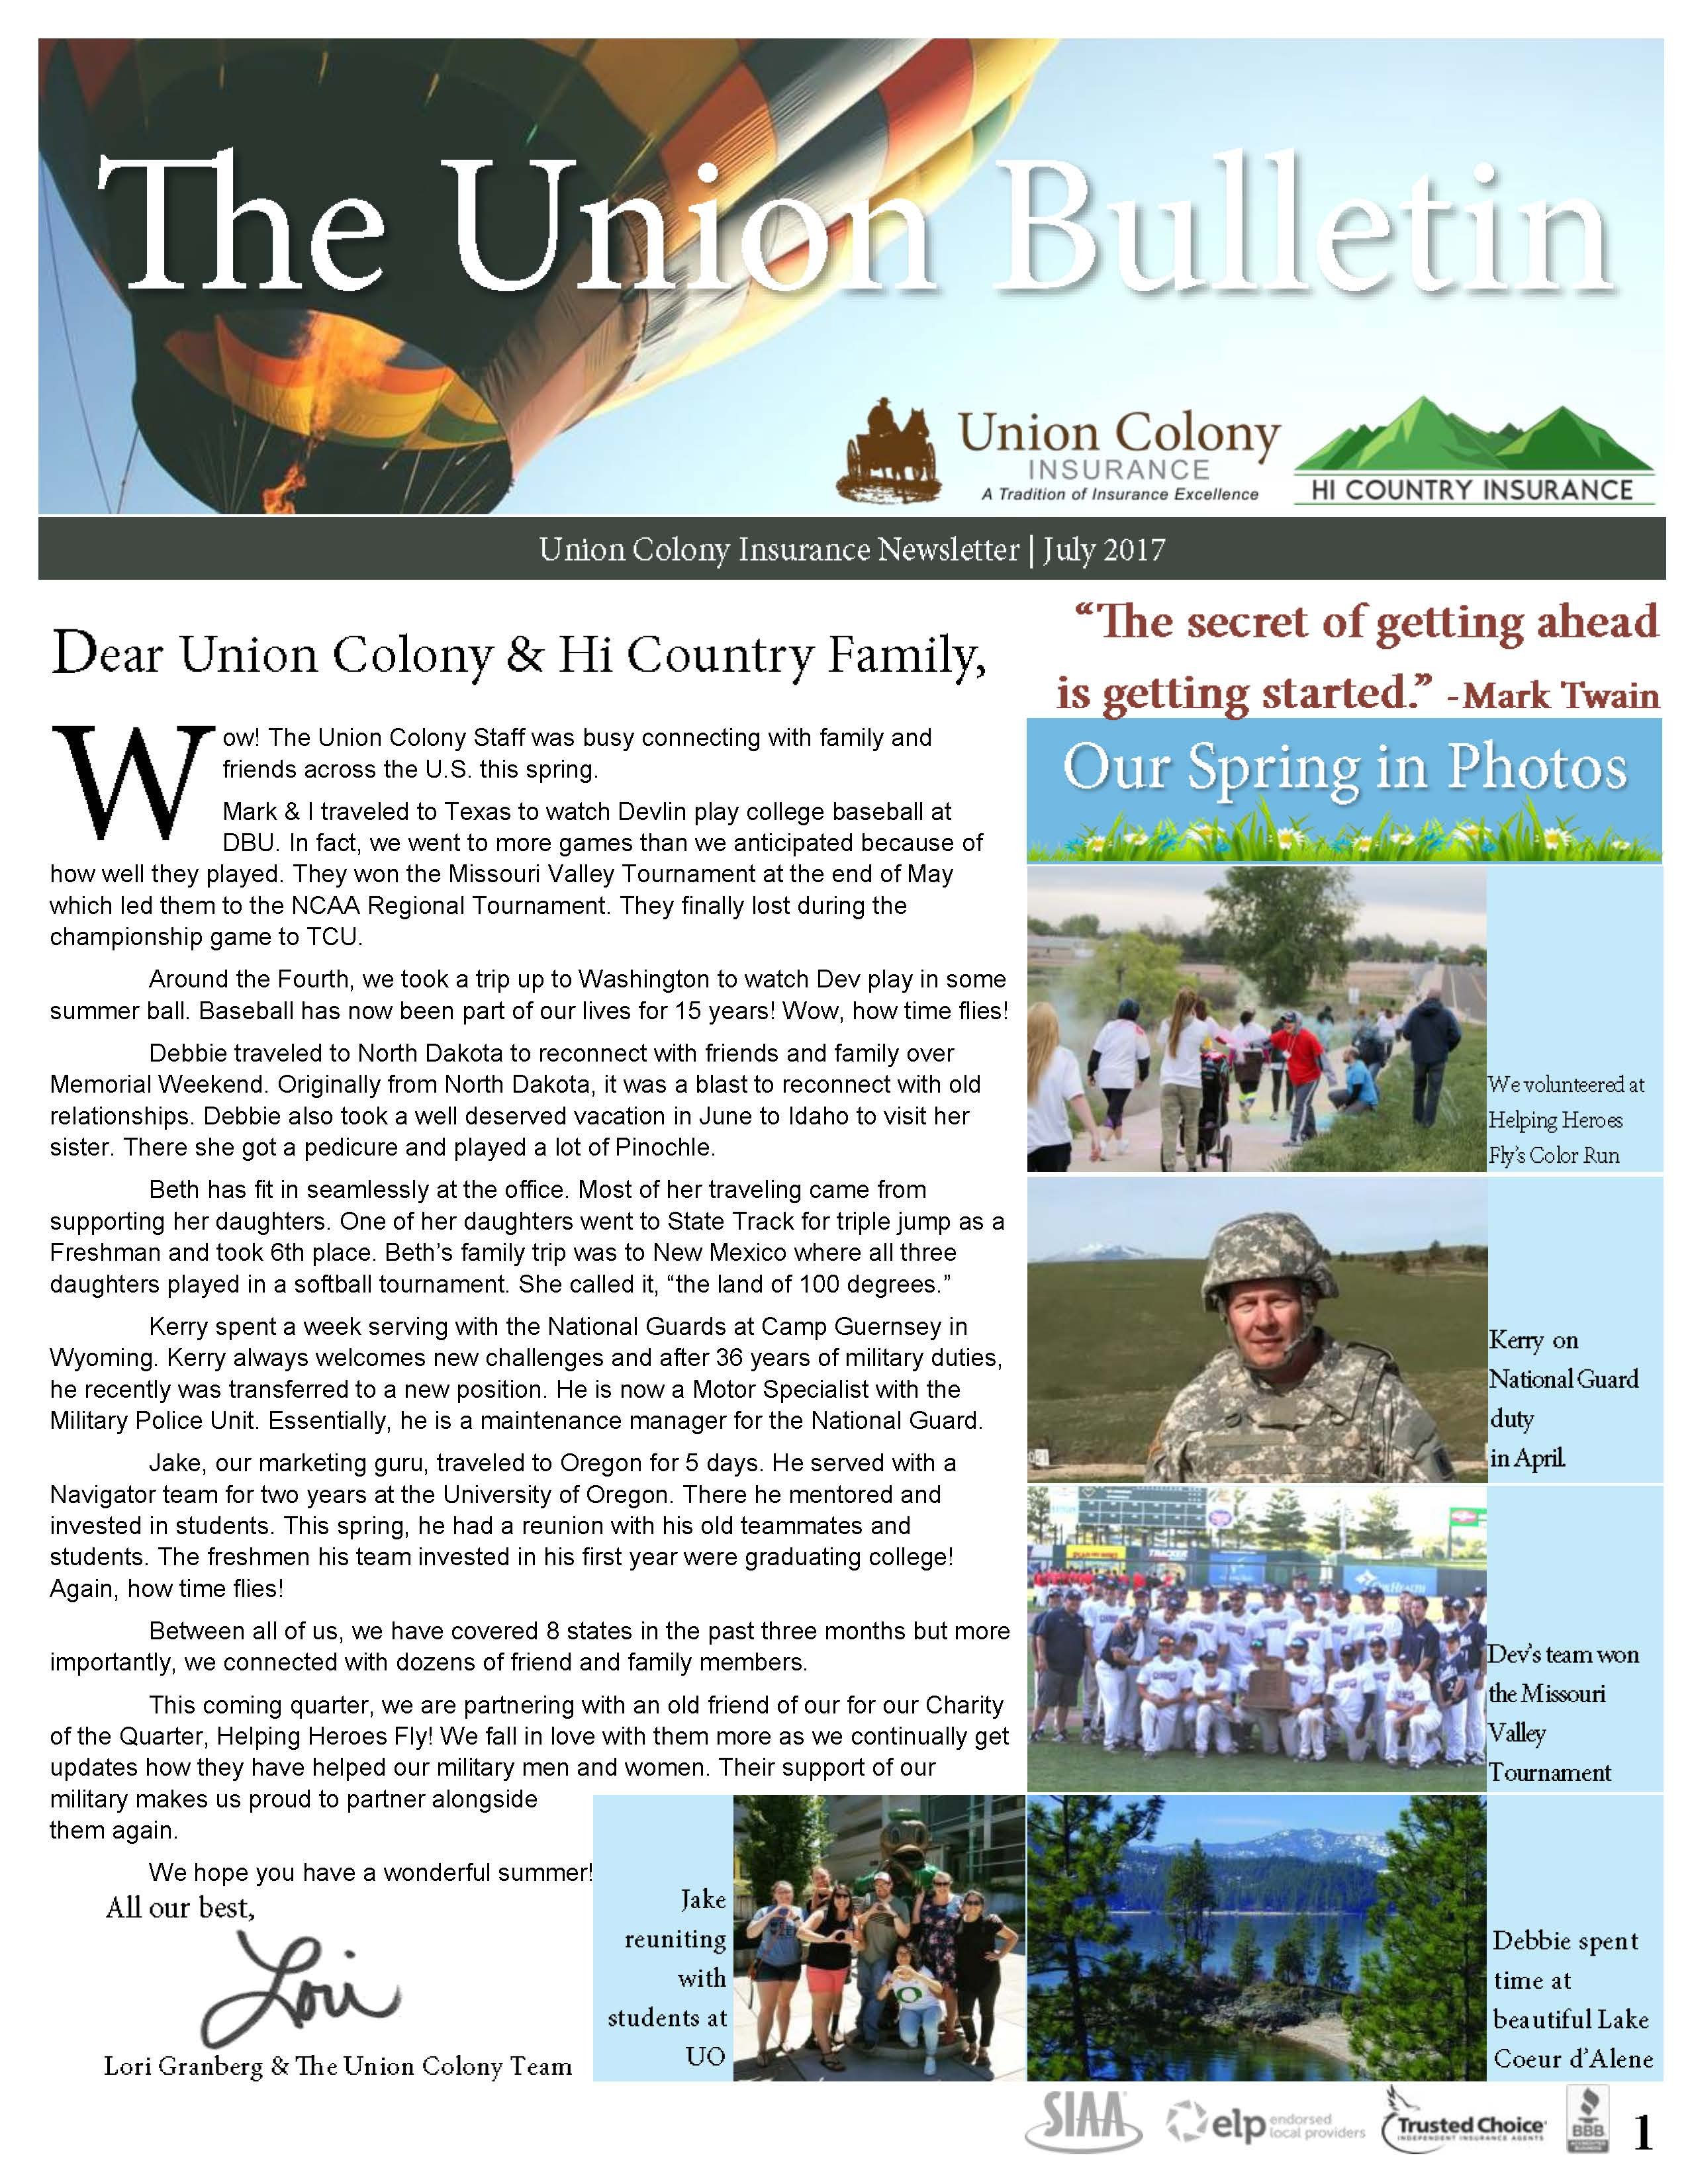 The Union Bulletin - July 2017 Page 1